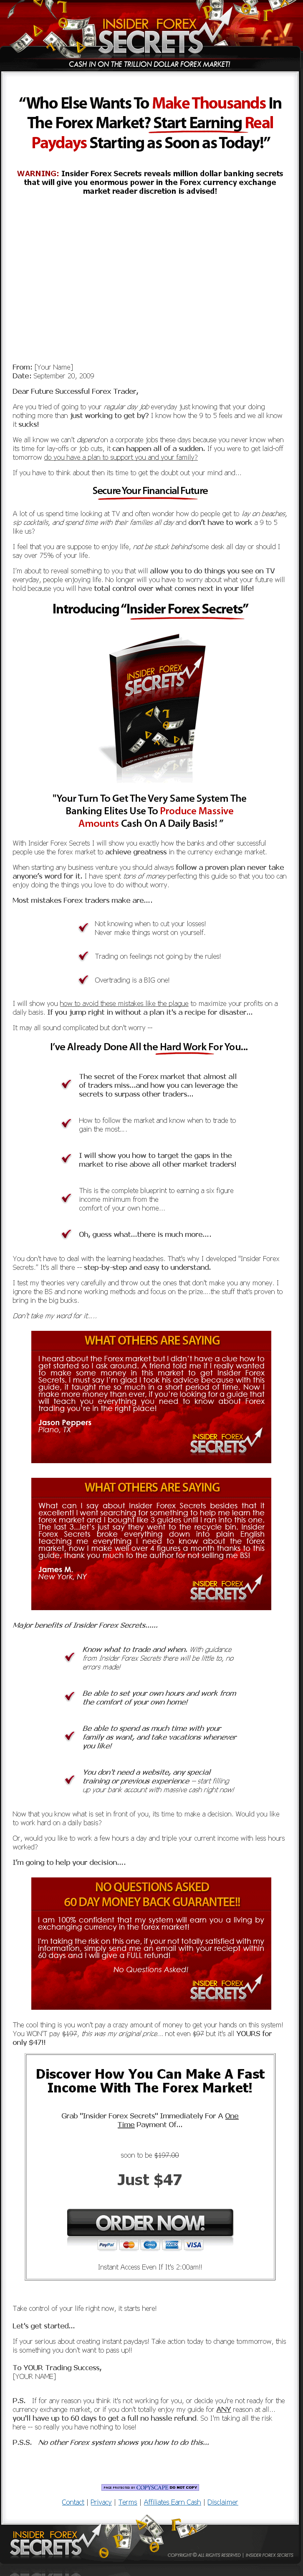 Forex secrets book